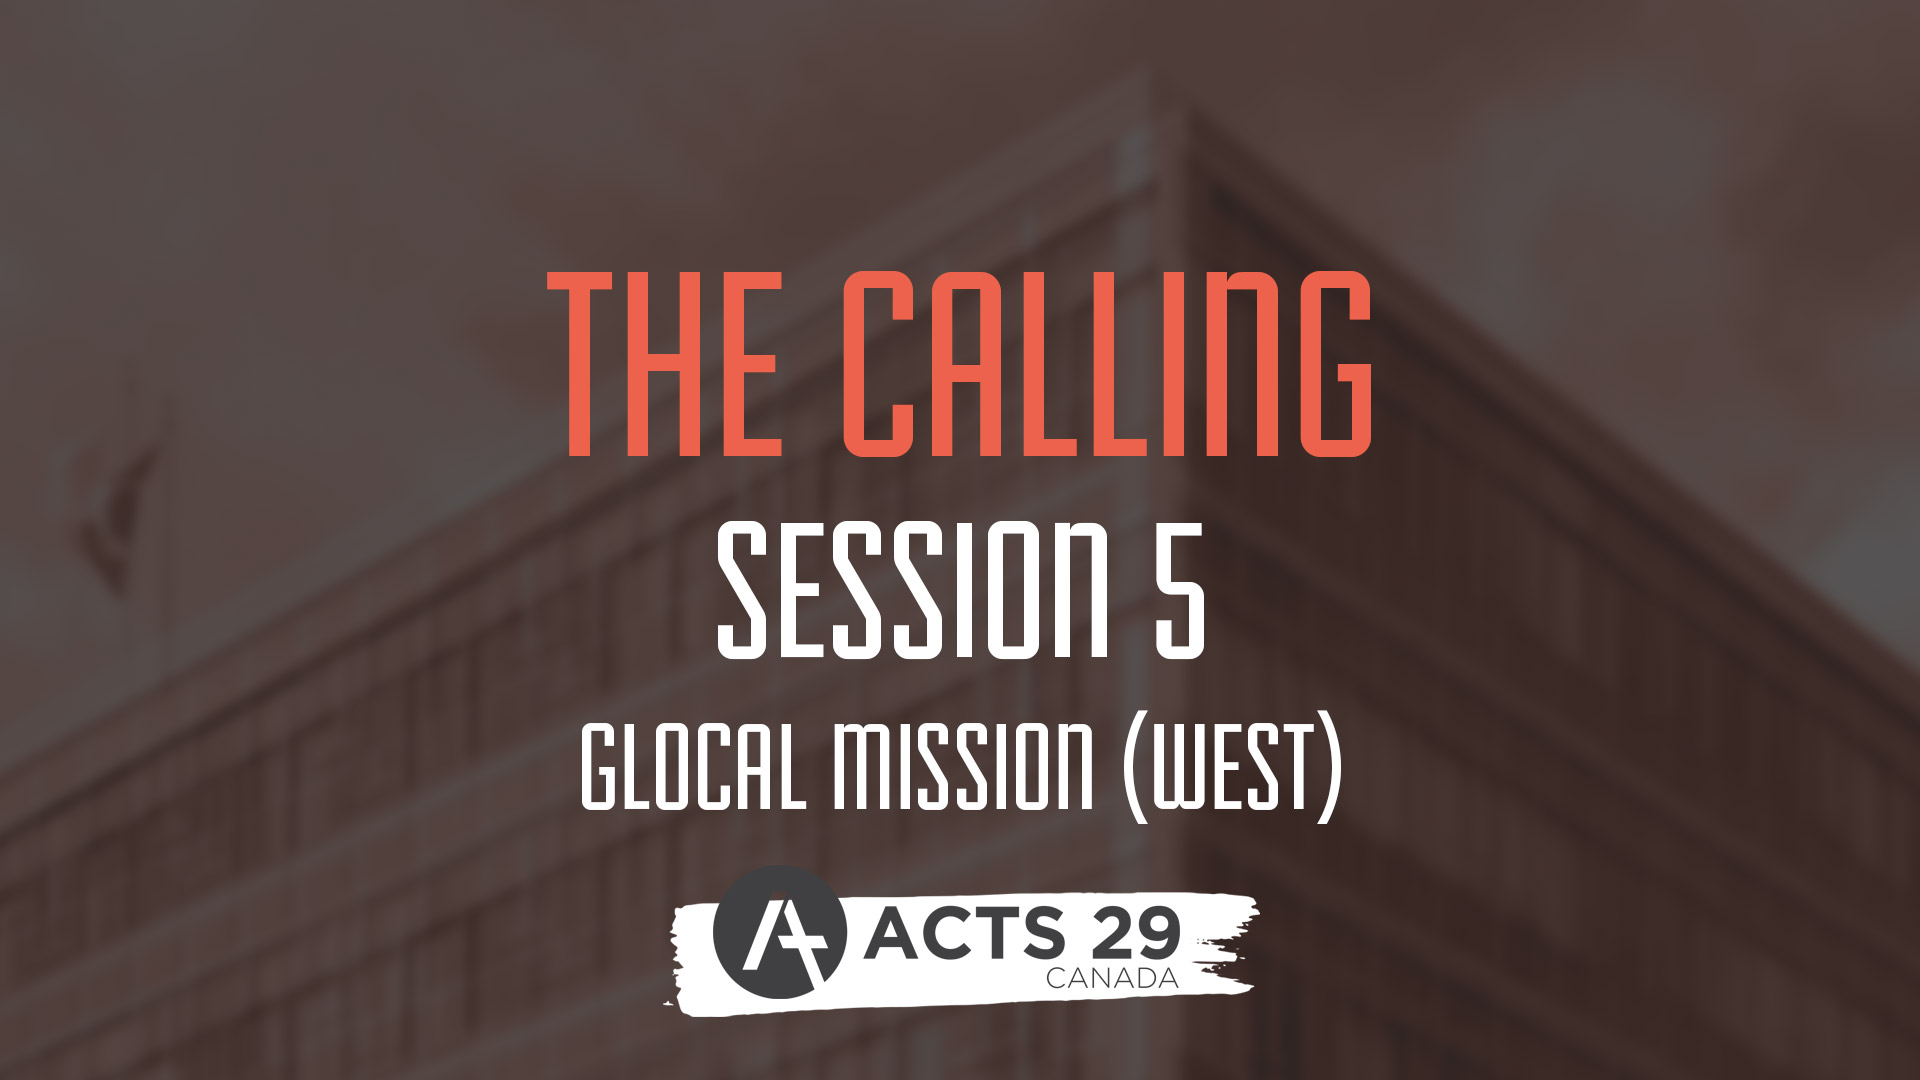 The Calling - Session 5 - West